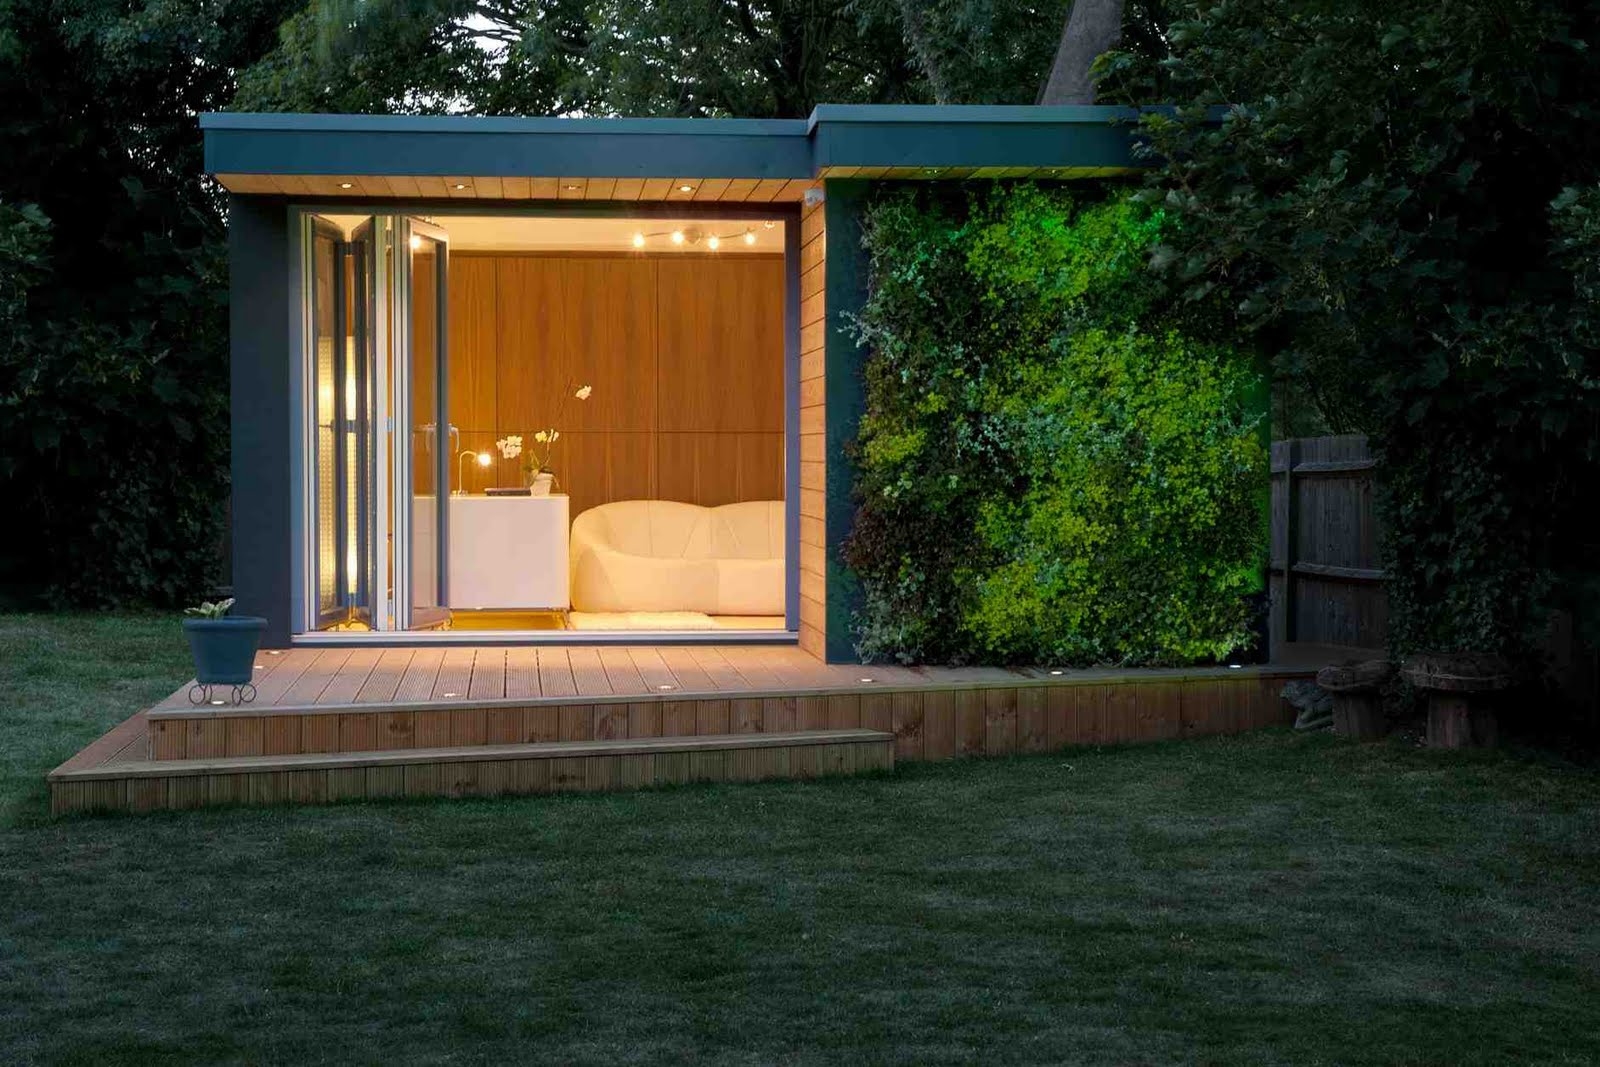 Logeerkamer Inrichten Shedworking Nuts And Bolts Fitting Out Your Garden Office